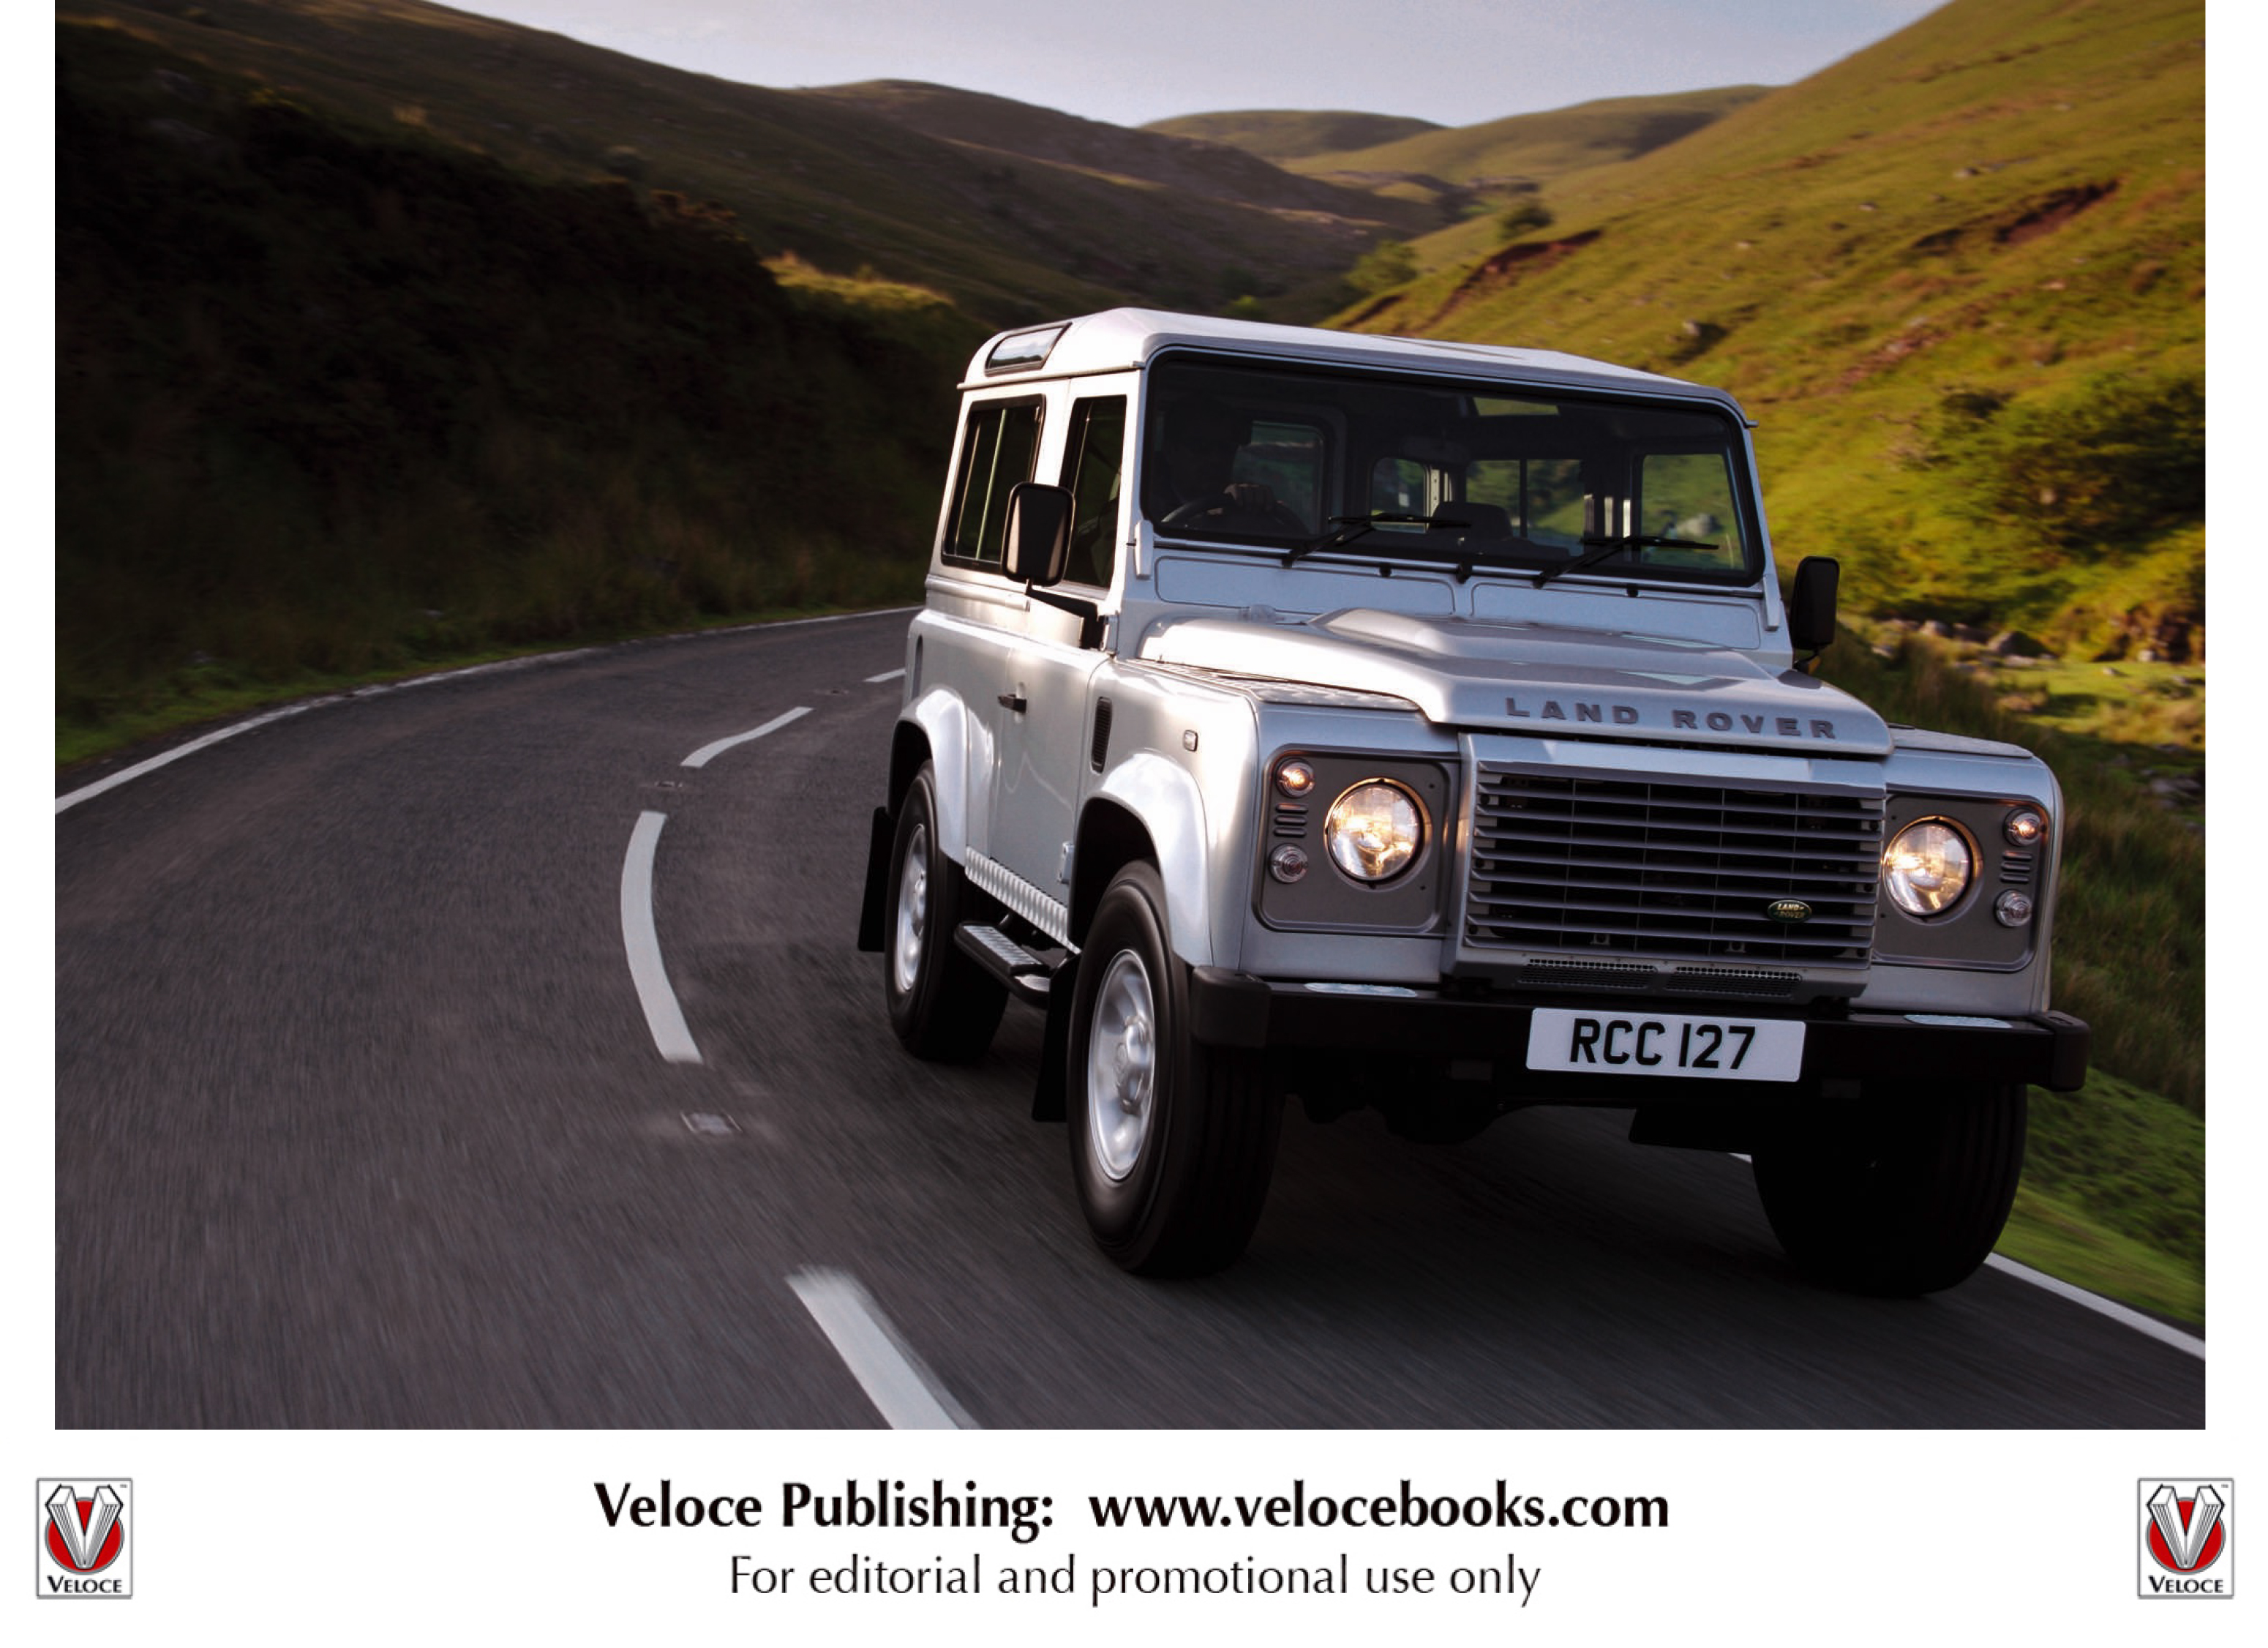 Land Rover Design - 70 years of success by Nick Hull